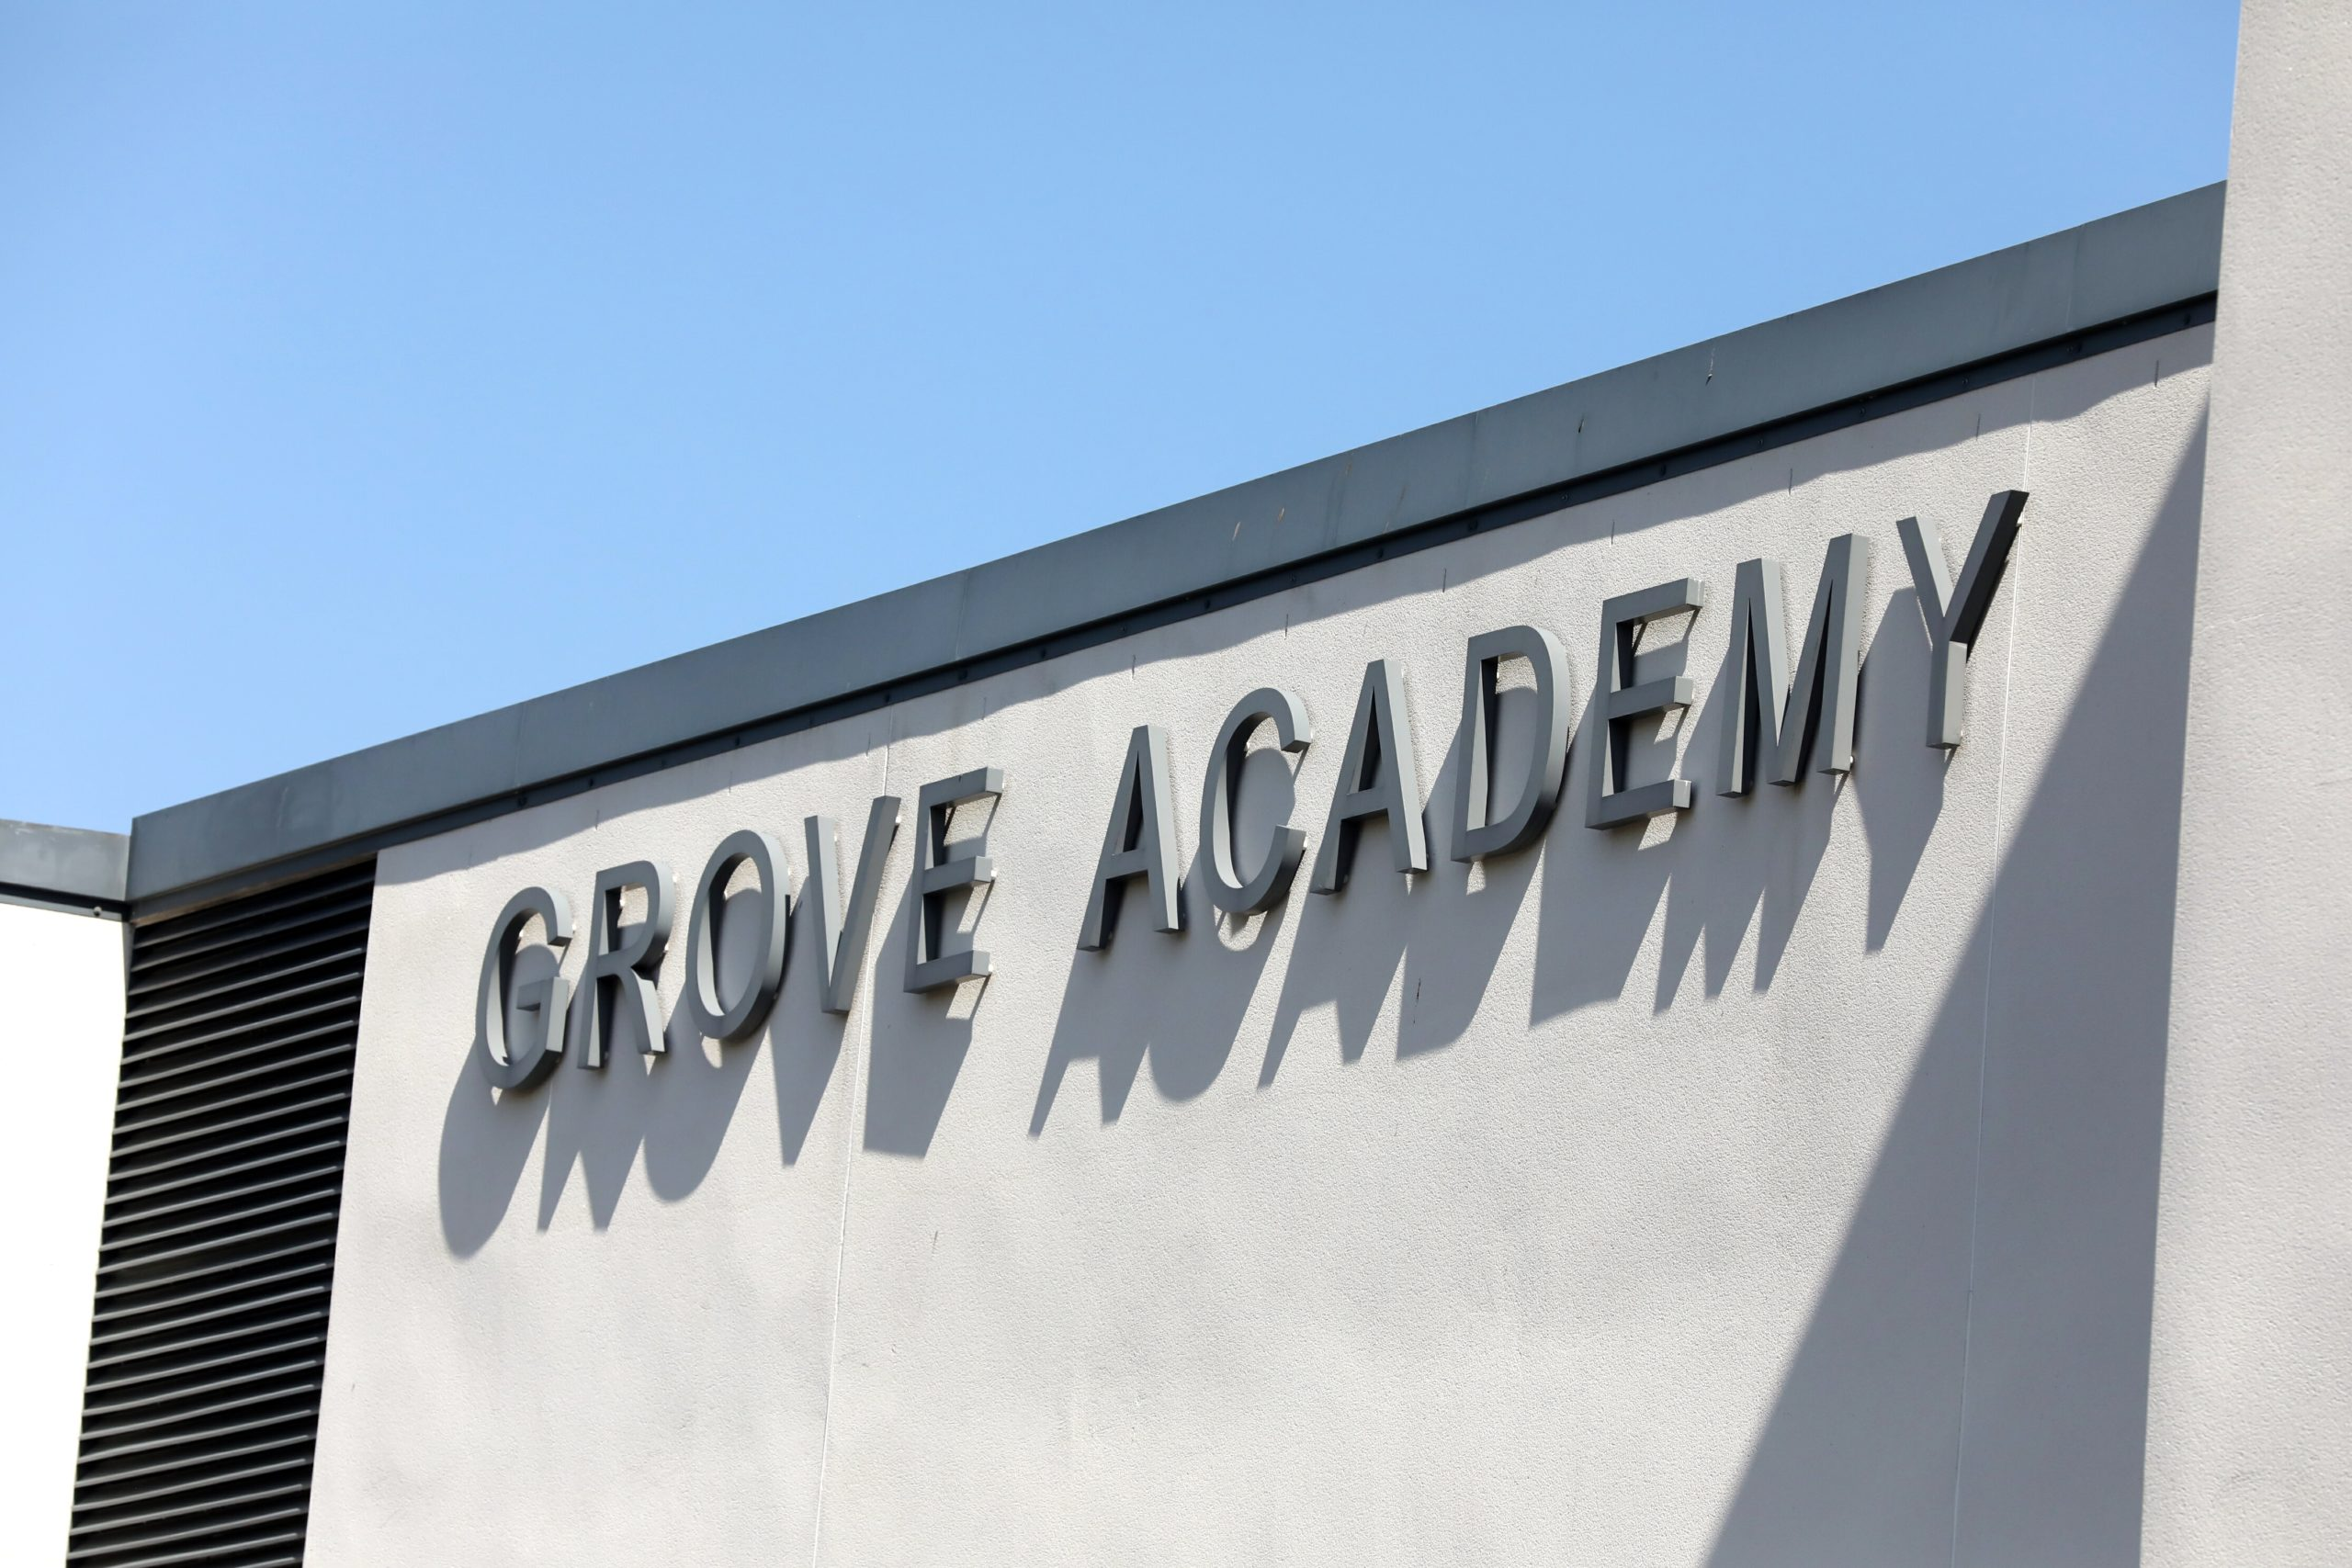 Grove Academy is in Broughty Ferry.